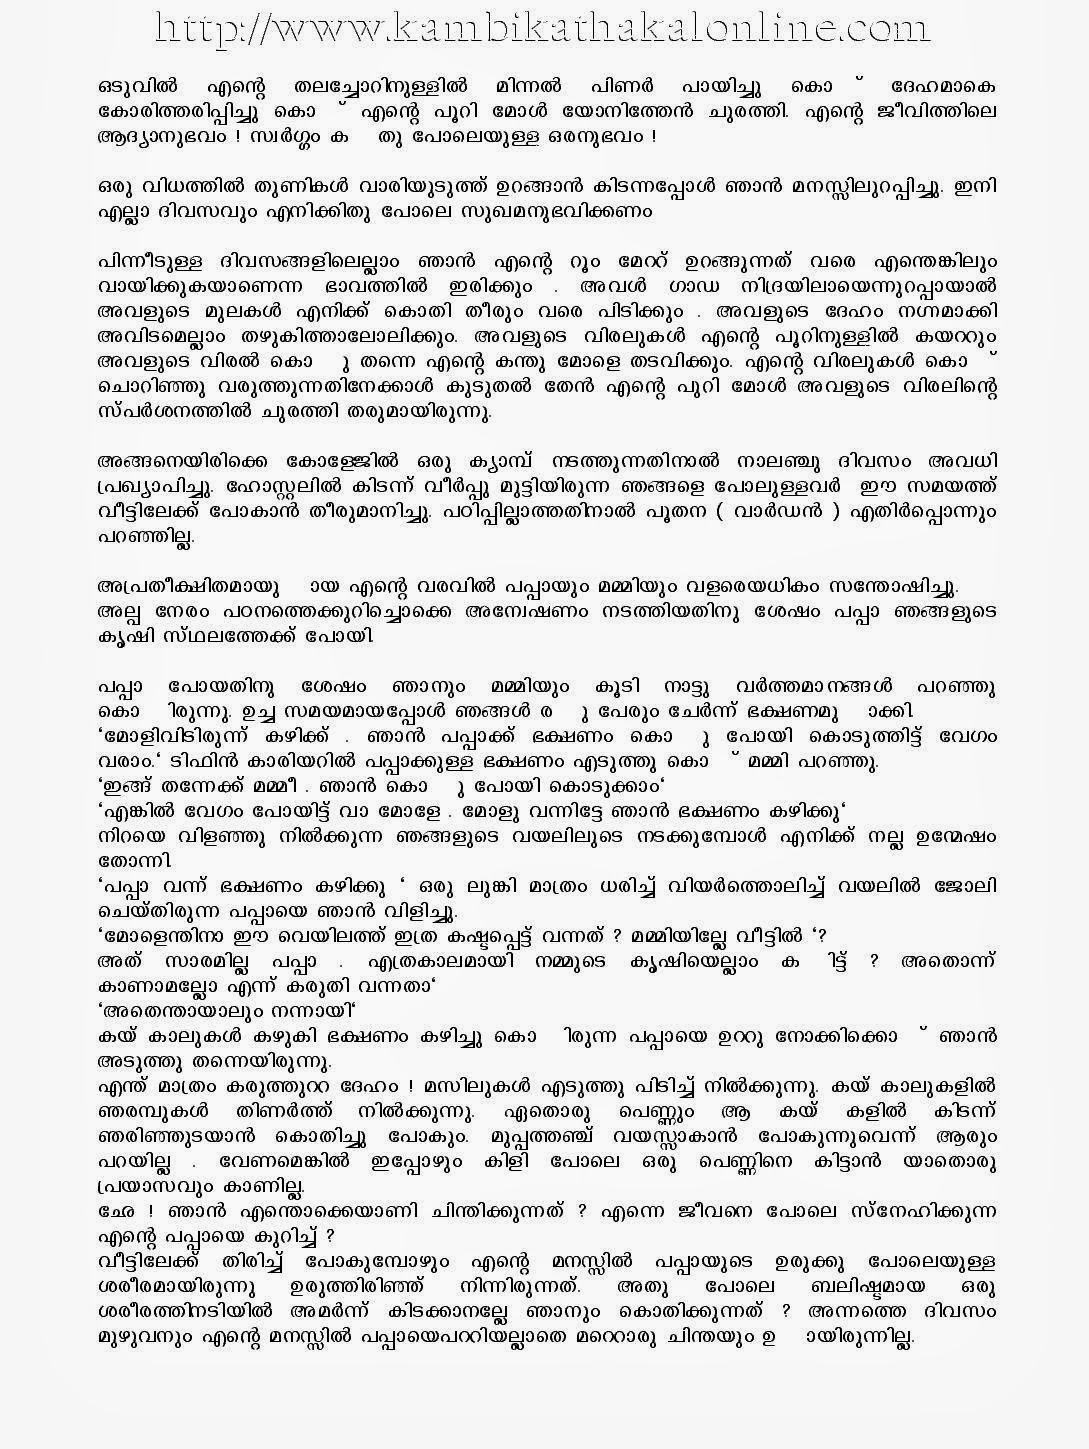 Porn stories in malayalam